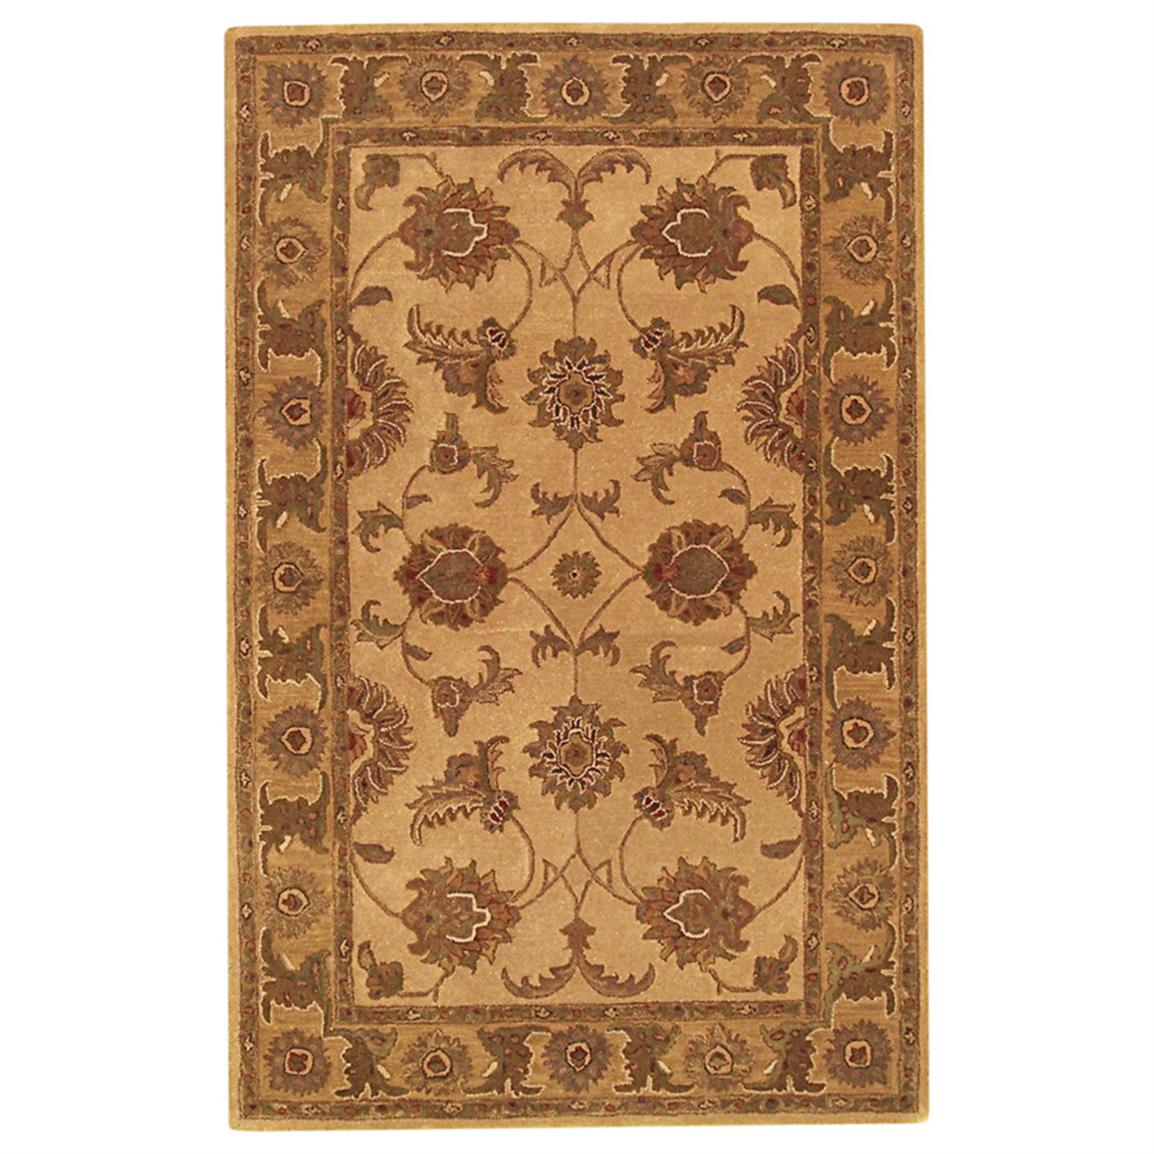 DonnieAnn® 5x8 foot Imperial Area Rug, Beige / Gold / Traditional Design